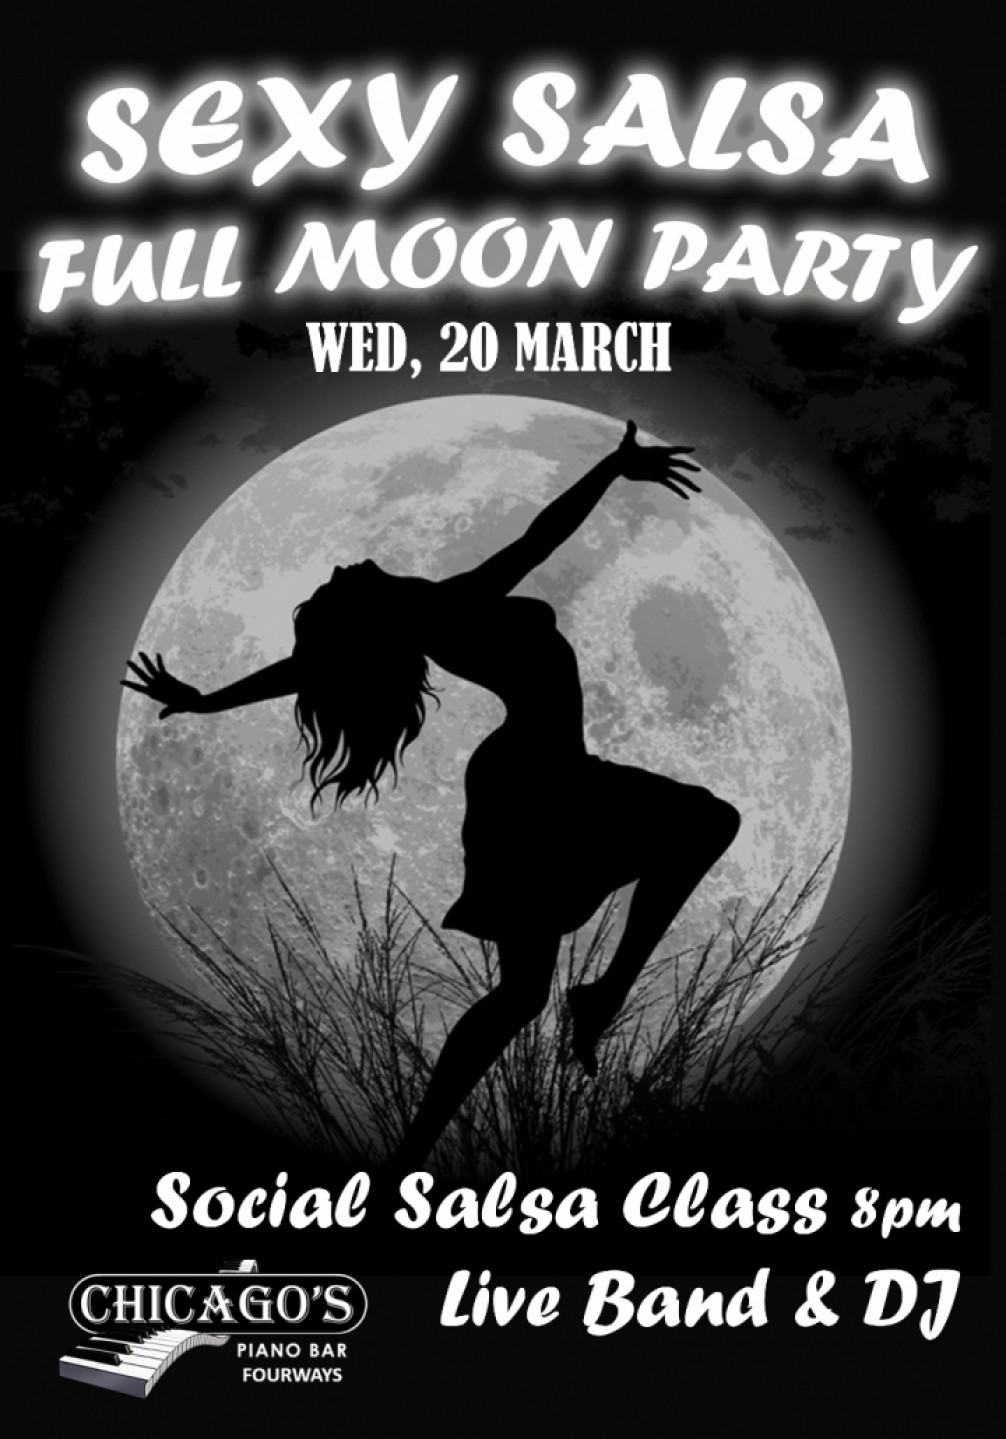 Sasla Full Moon Party